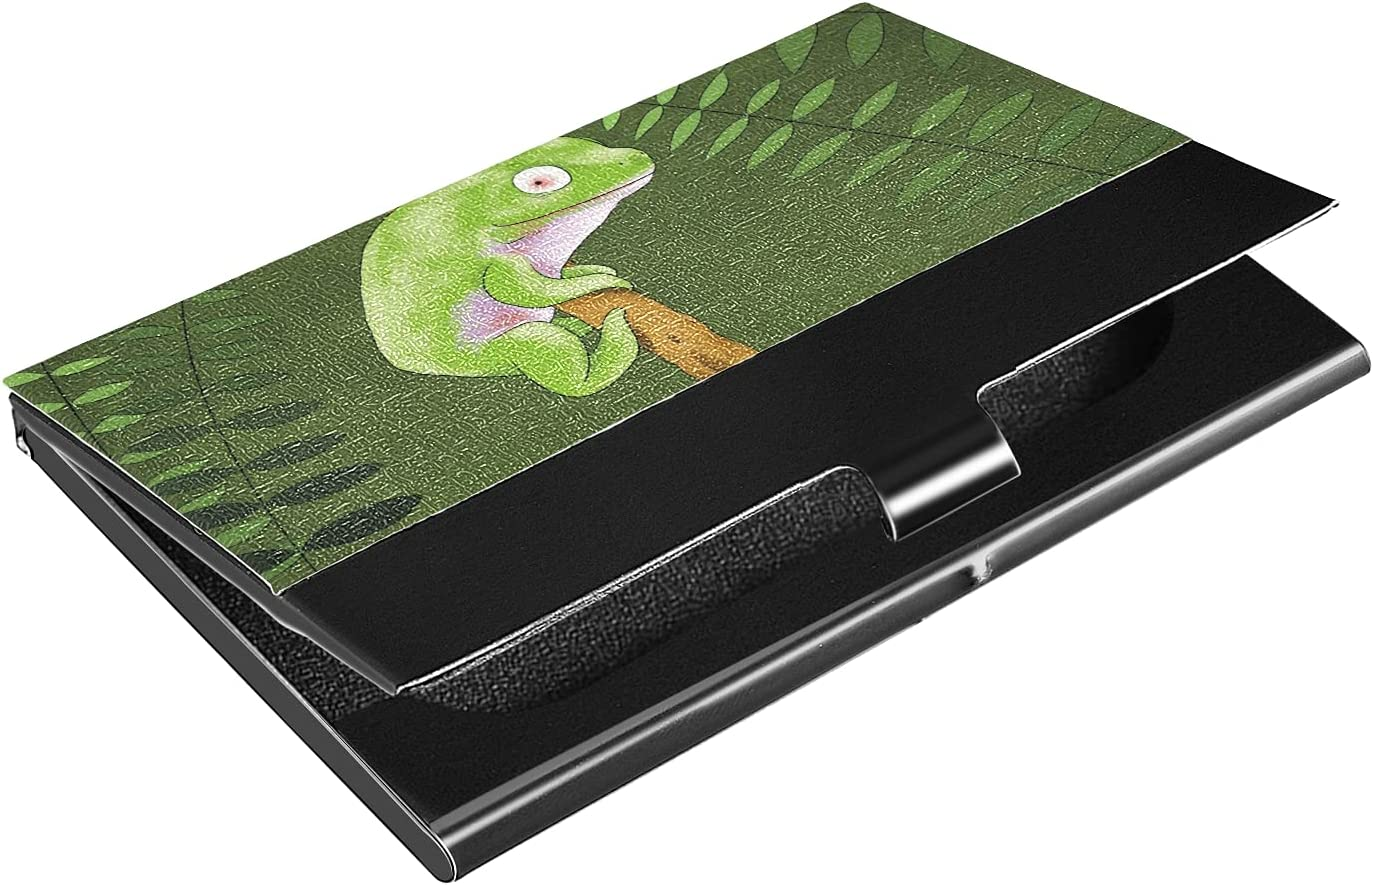 OTVEE Cute Green Frog Business Card Holder Wallet Stainless Steel & Leather Pocket Business Card Case Organizer Slim Name Card ID Card Holders Credit Card Wallet Carrier Purse for Women Men